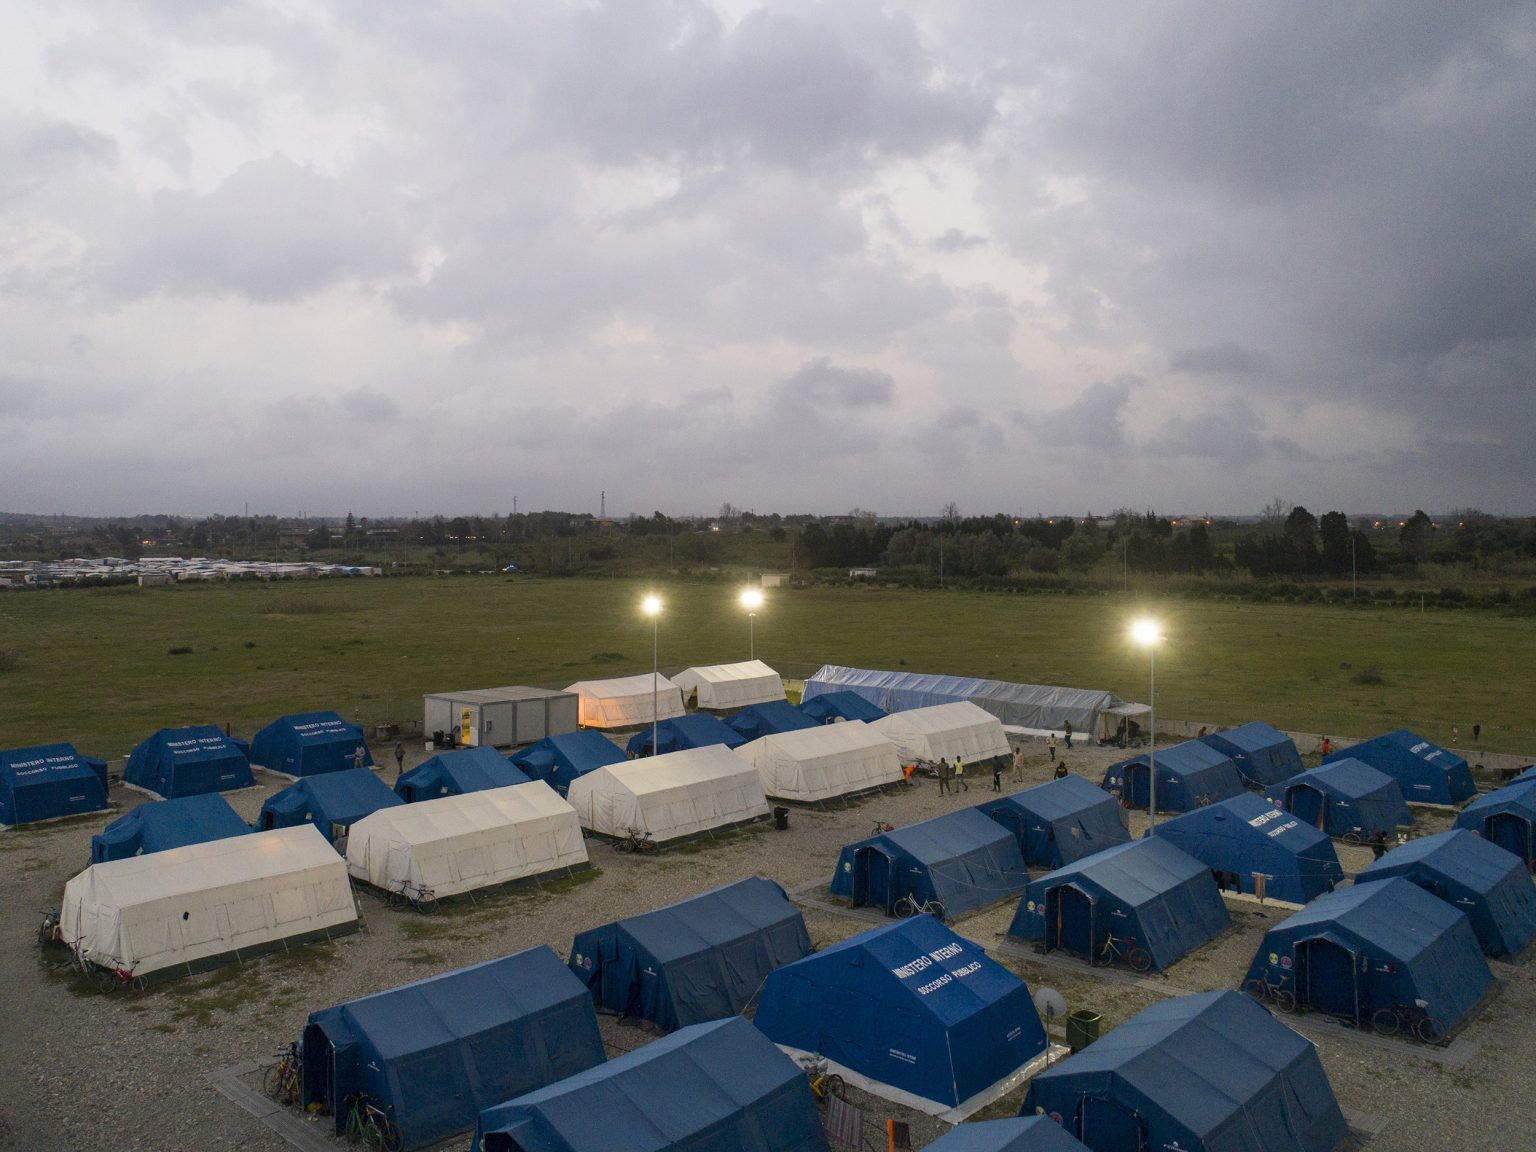 San Ferdinando, Italy. 4 April 2018. The camp built by the Ministry of Internal Affairs to host 500 laborers.